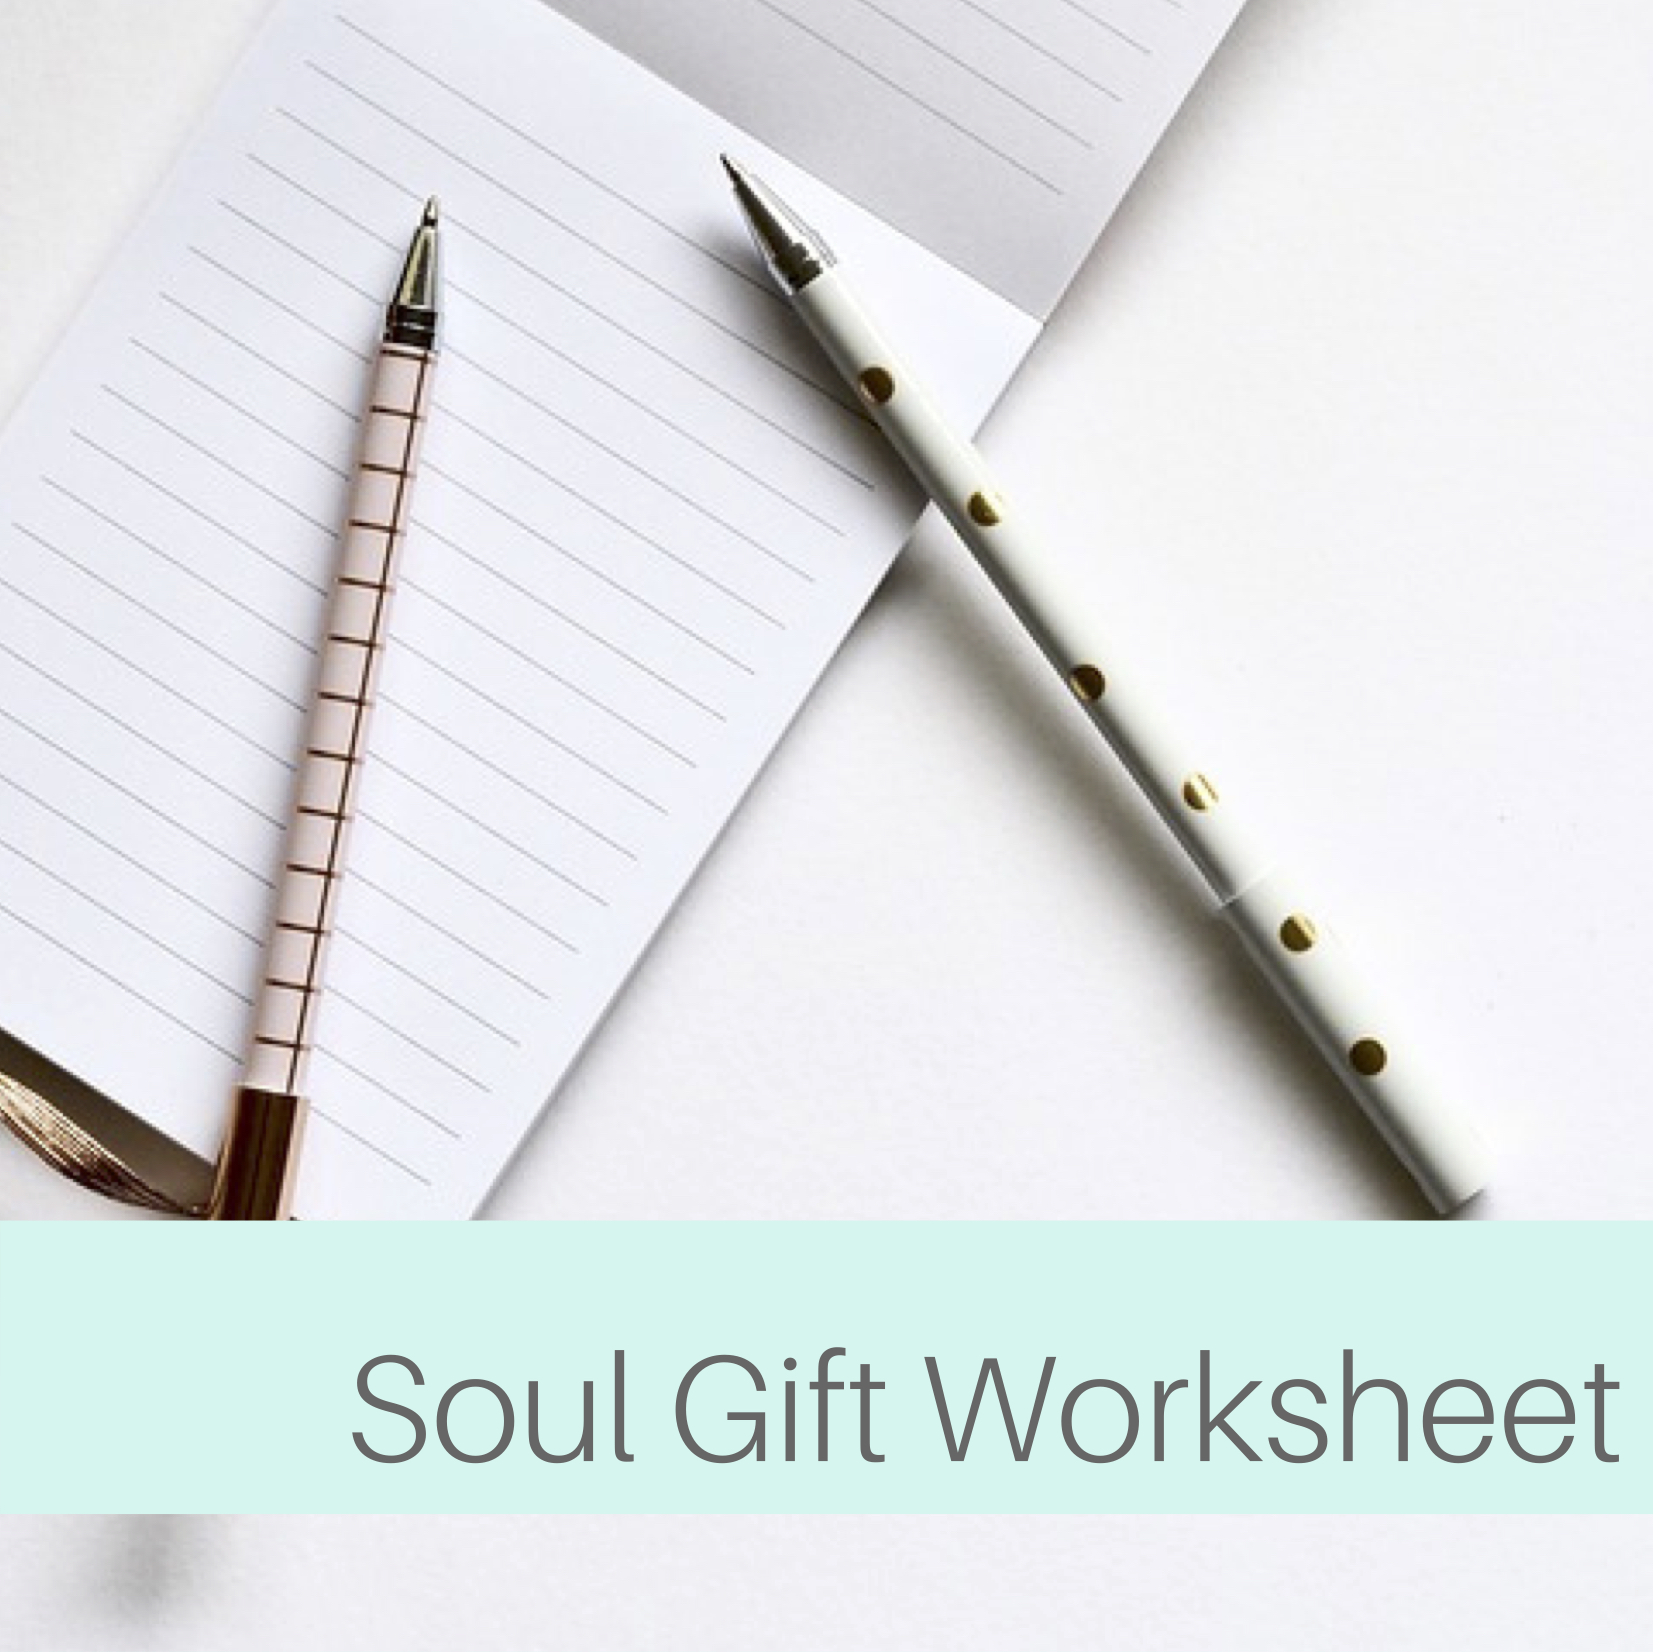 Discover your soul gift -